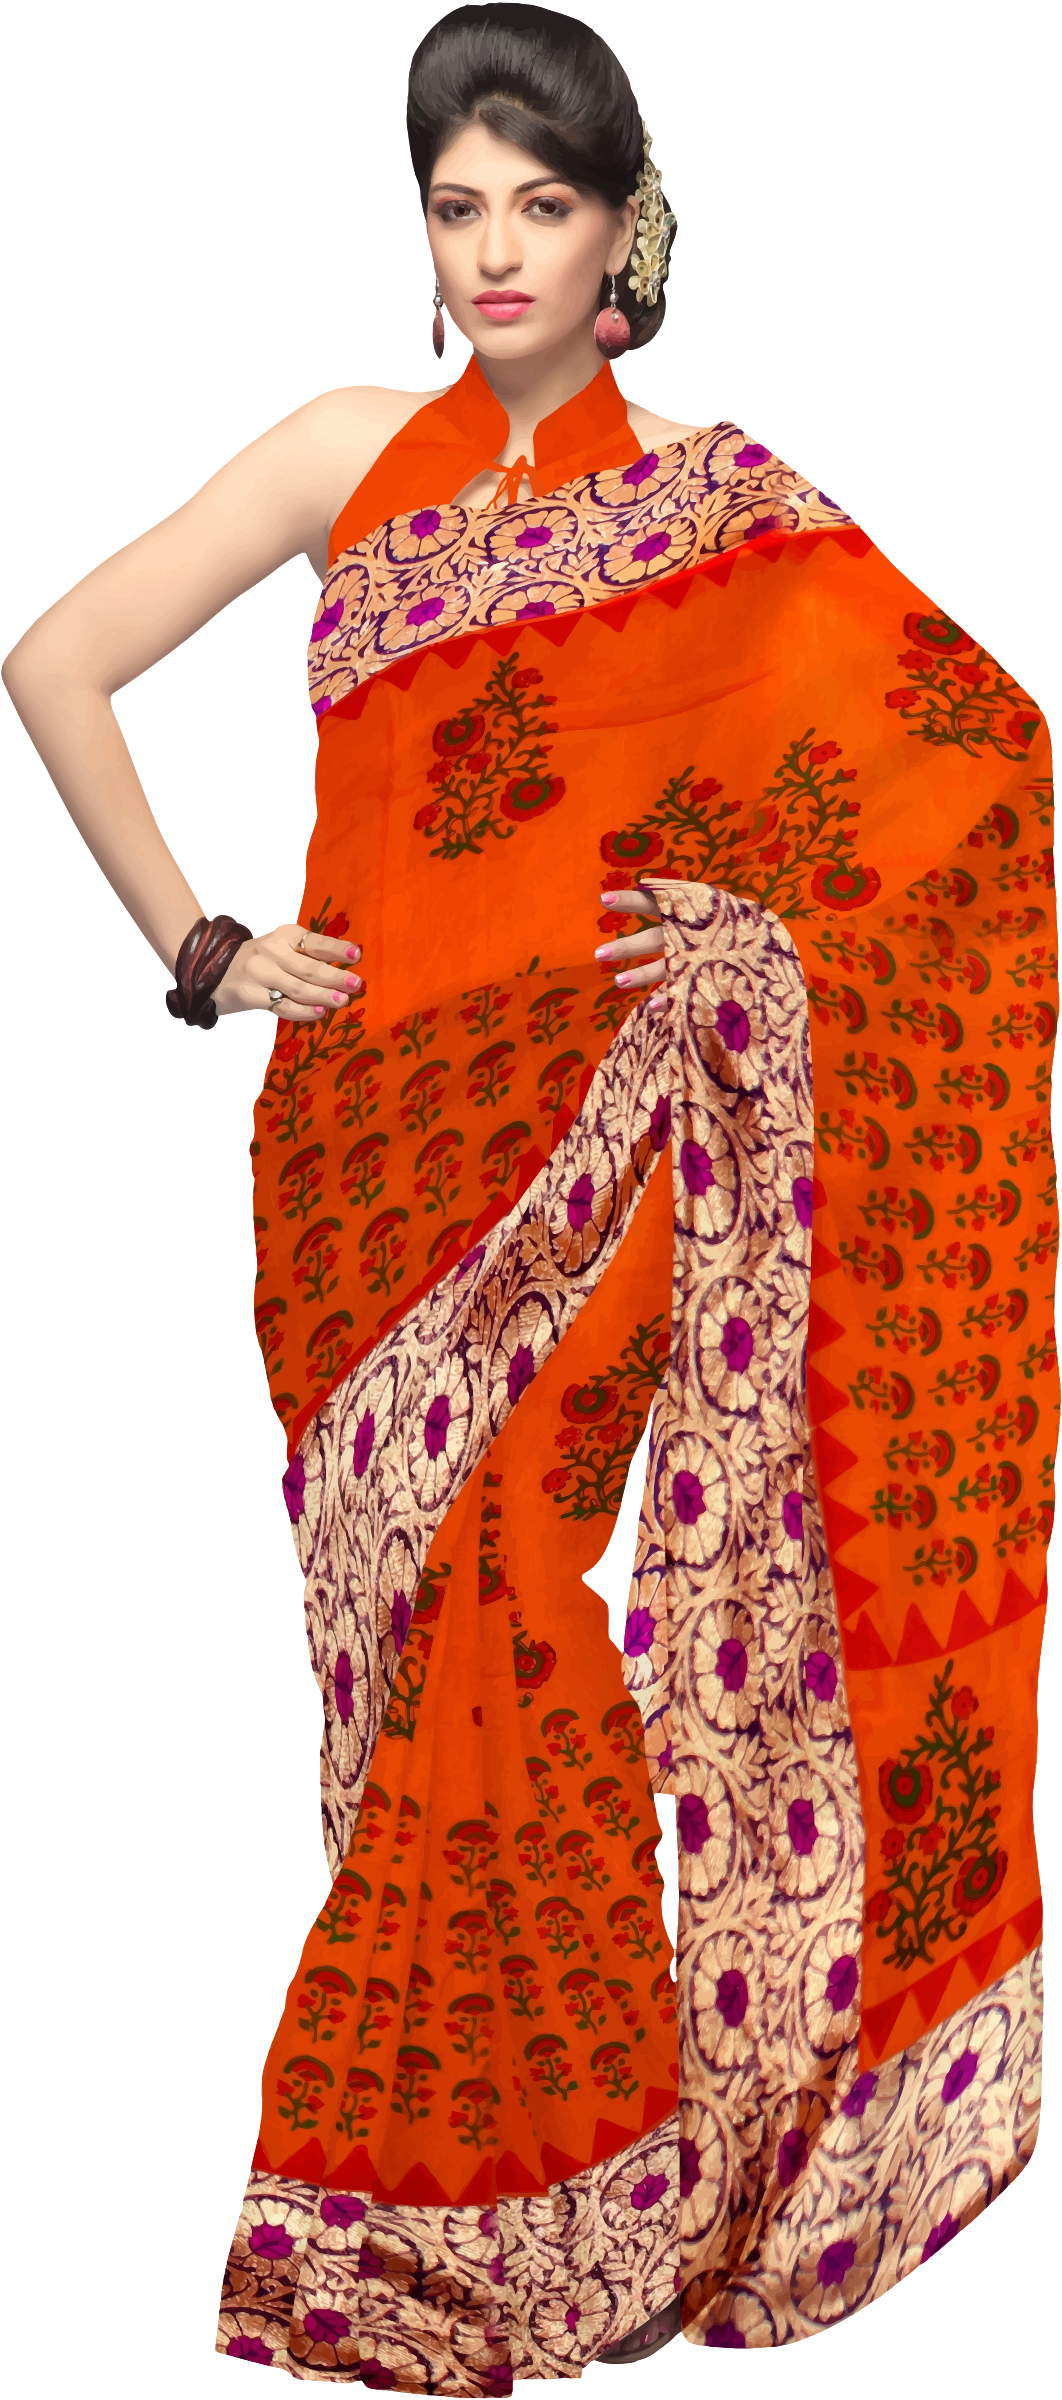 India clipart clothes. Woman in saree big